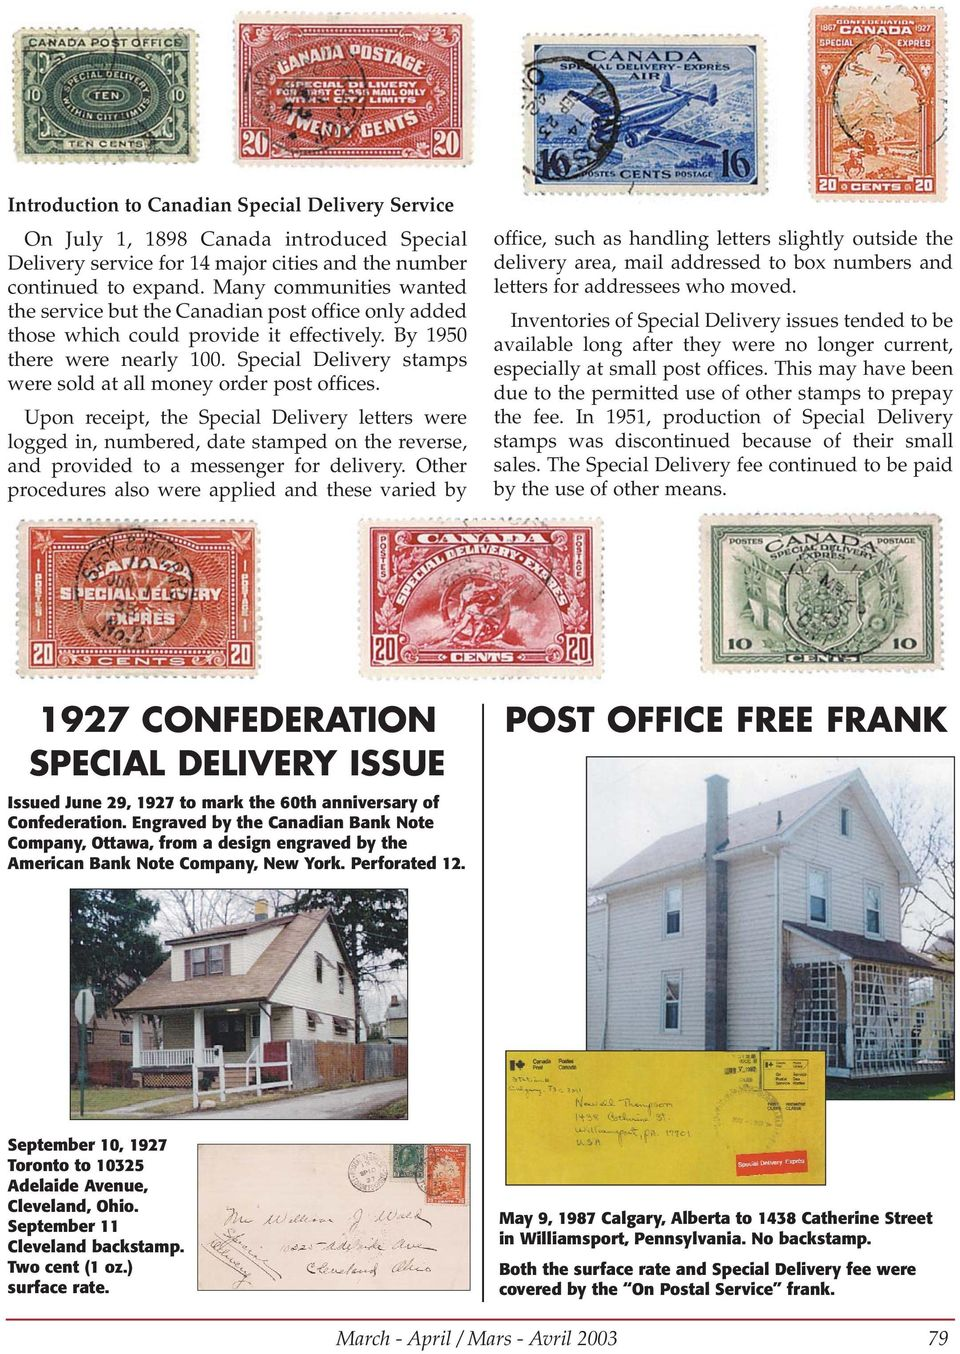 Special Delivery stamps were sold at all money order post offices.